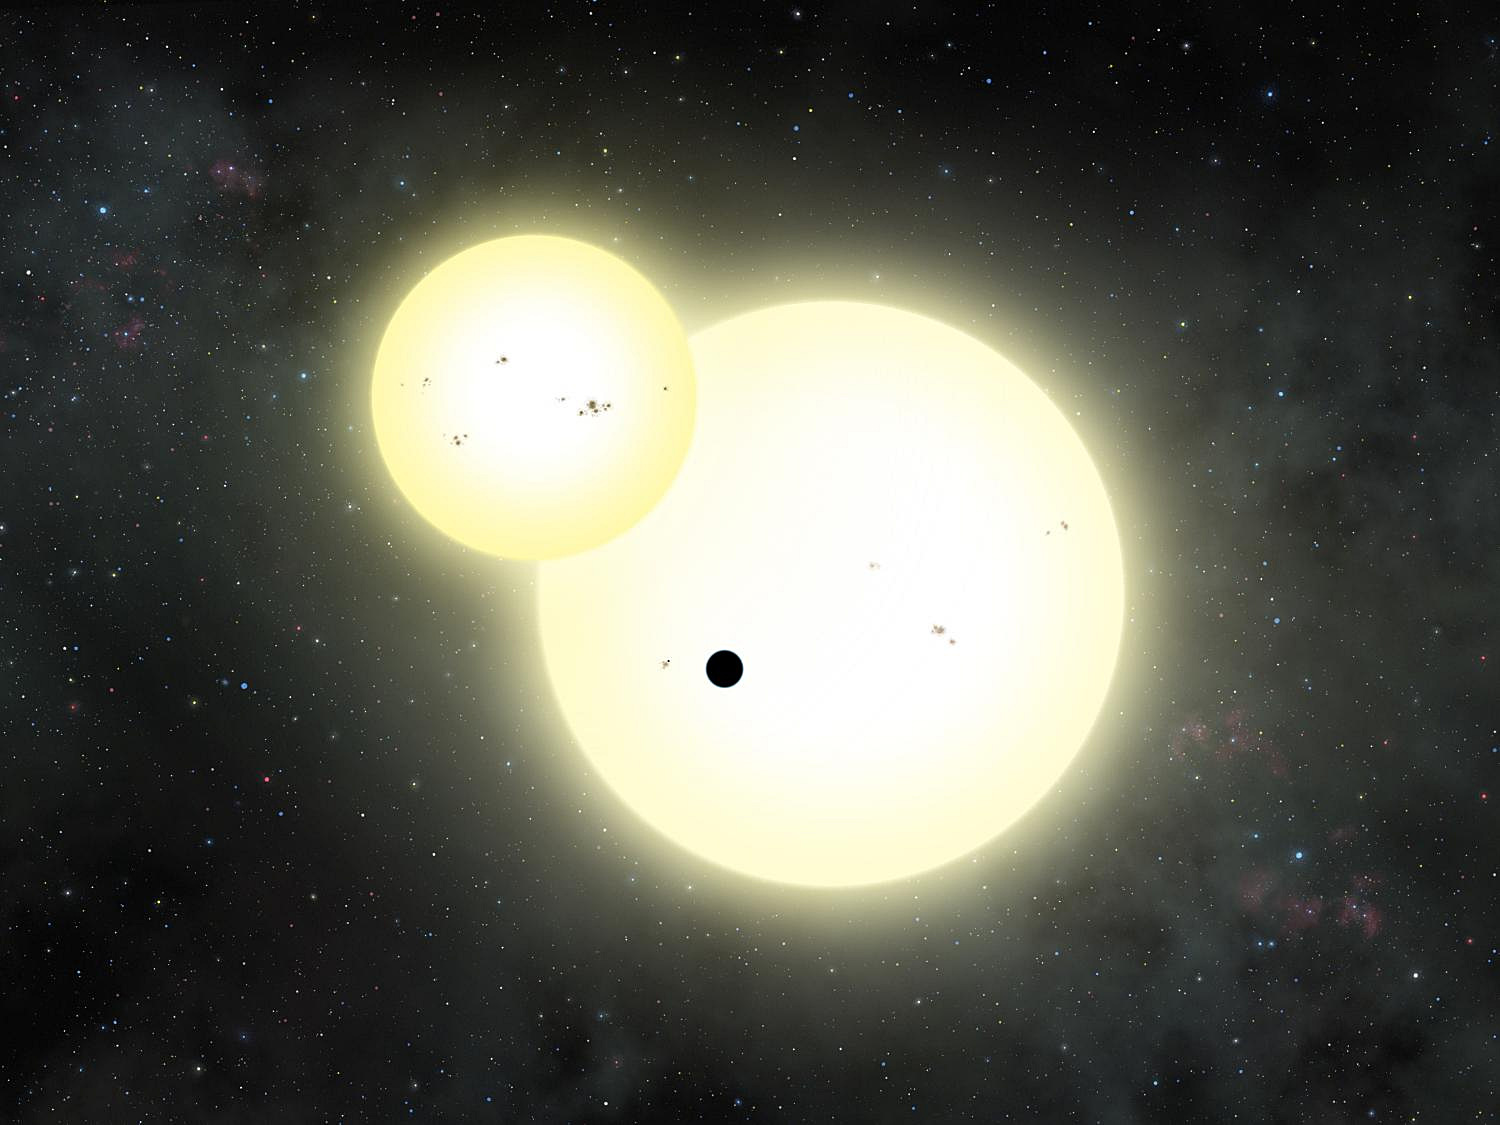 Artist's impression of the simultaneous stellar eclipse and planetary transit events on Kepler-1647 b. Such a double eclipse event is known as a syzygy. Illustration credit: Lynette Cook.